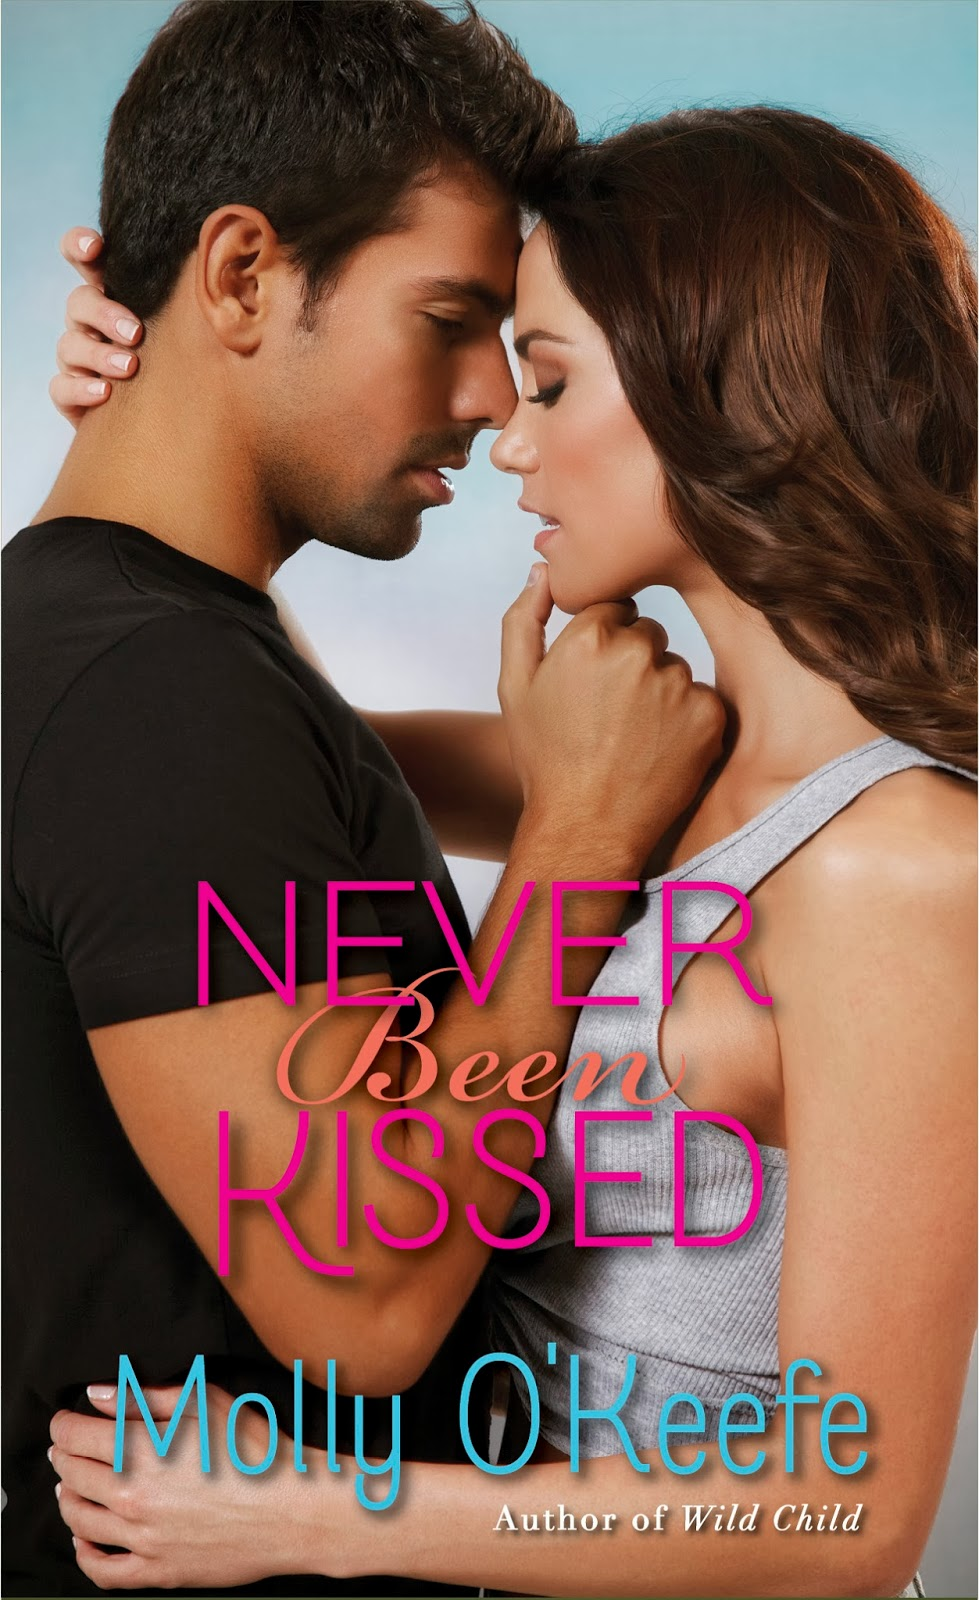 Never Been Kissed by Molly O'Keefe (July 2014)  Amazon  |  Goodreads